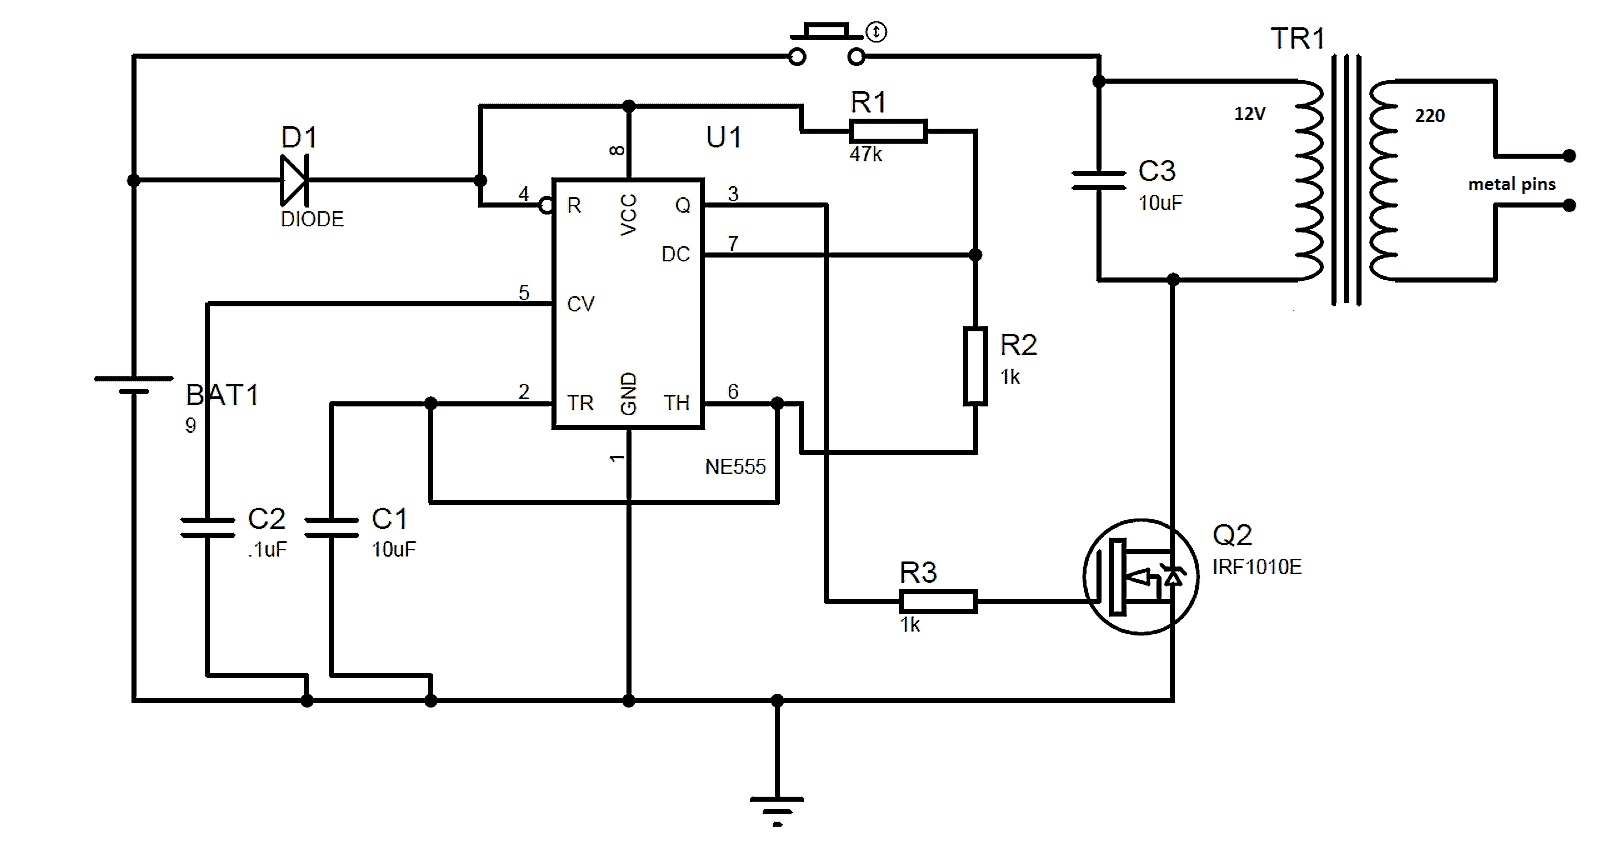 Inverter 12v To 220v Schematics Free Electronic Circuits Diagram